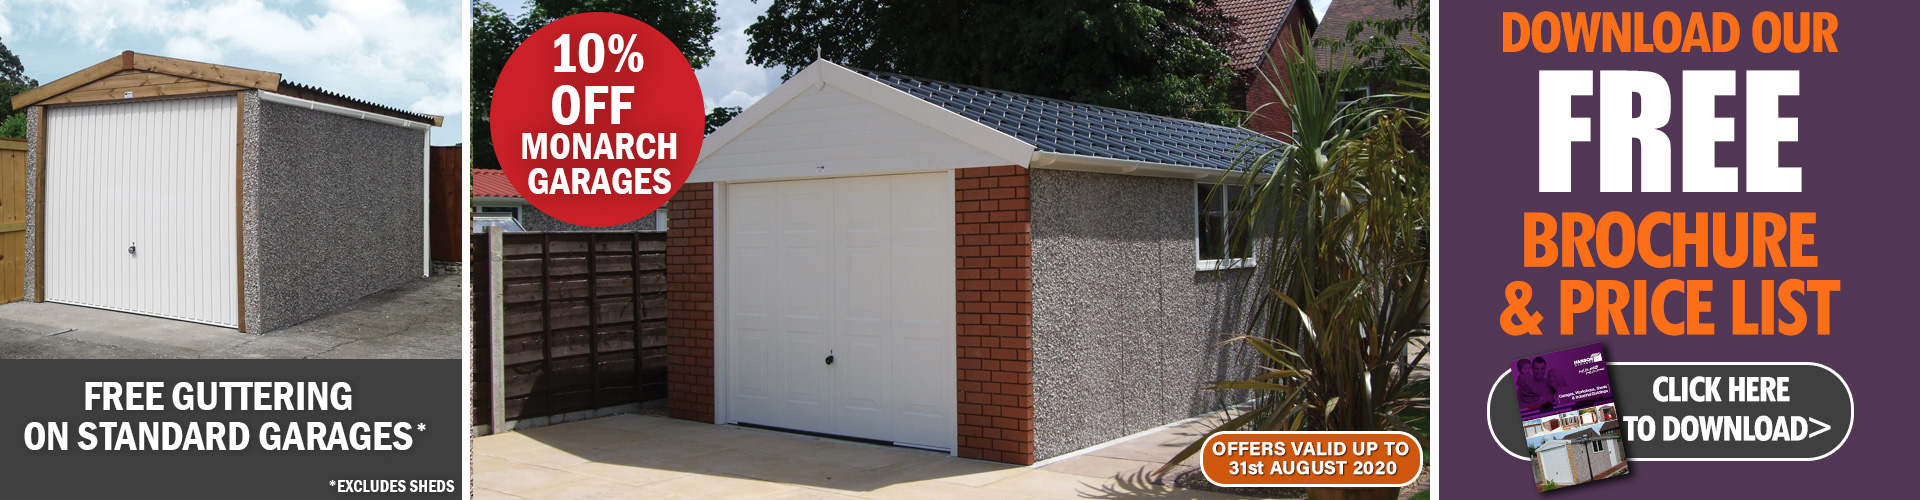 Concrete Garages Offer